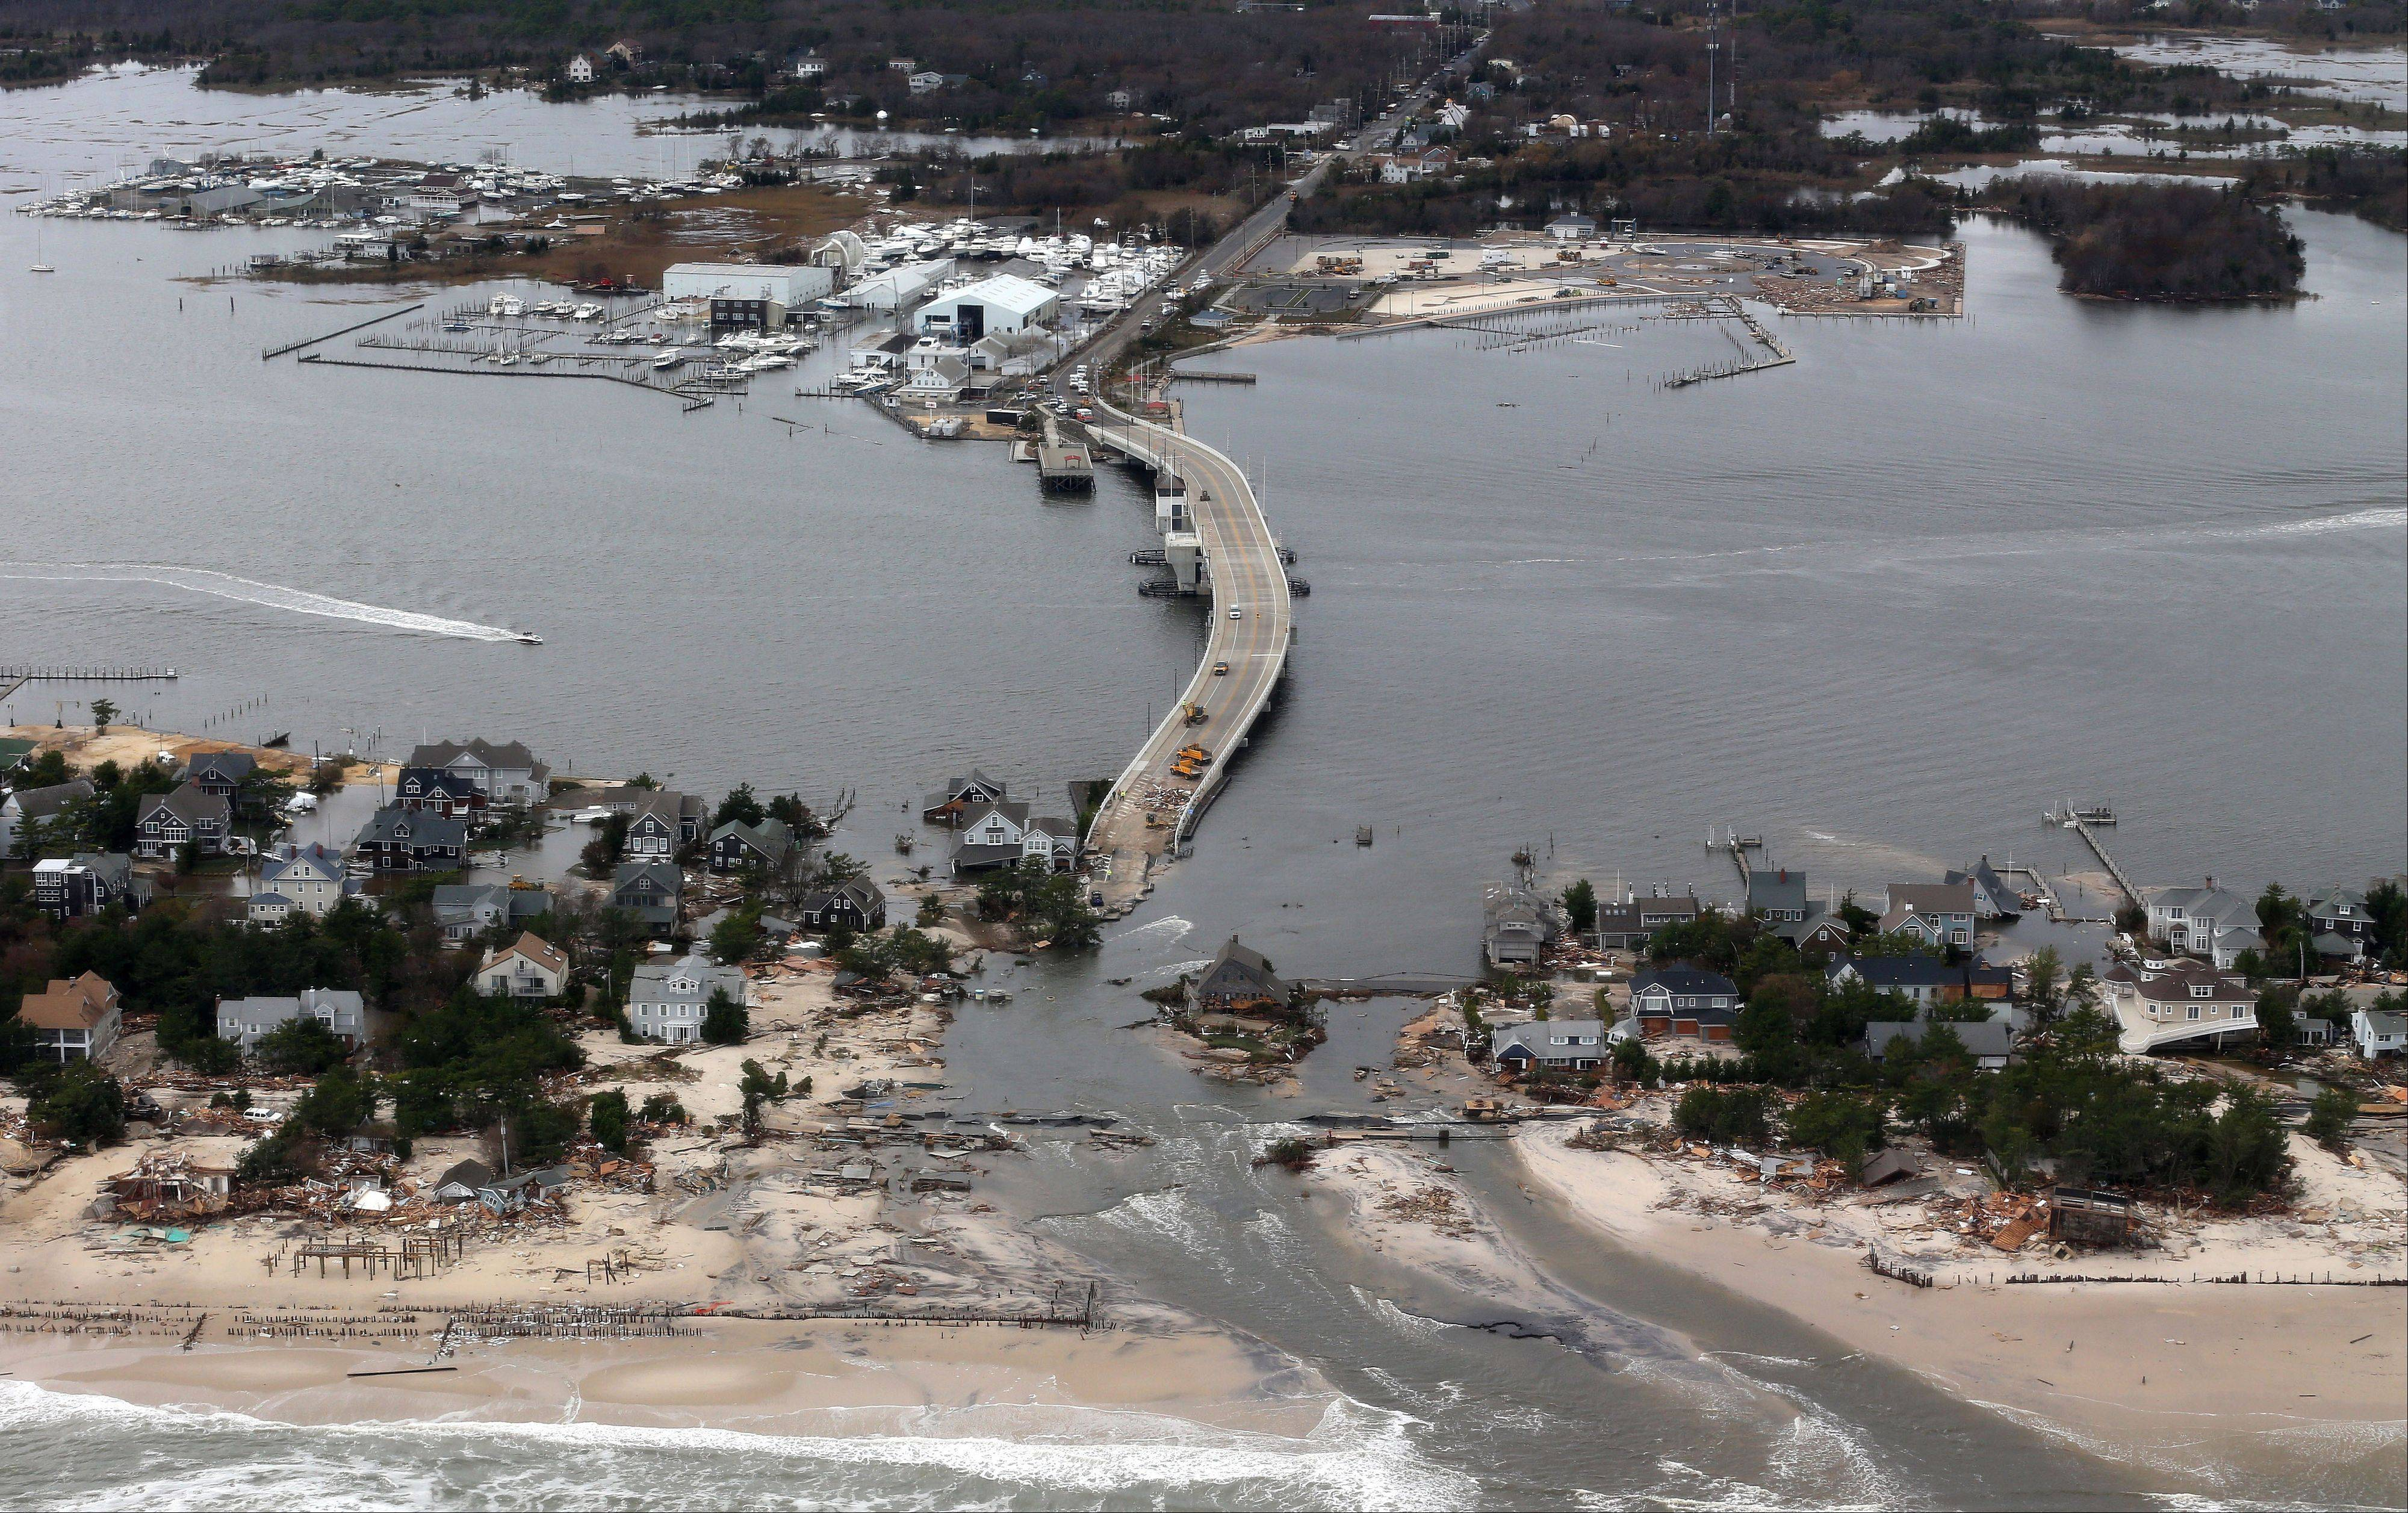 This aerial photo made from a helicopter shows storm damage from Sandy over the Atlantic Coast in Mantoloking, N.J., Wednesday, Oct. 31, 2012. The photo was made from a helicopter behind the helicopter carrying President Obama and New Jersey Gov. Chris Christie, as they viewed storm damage from superstorm Sandy.